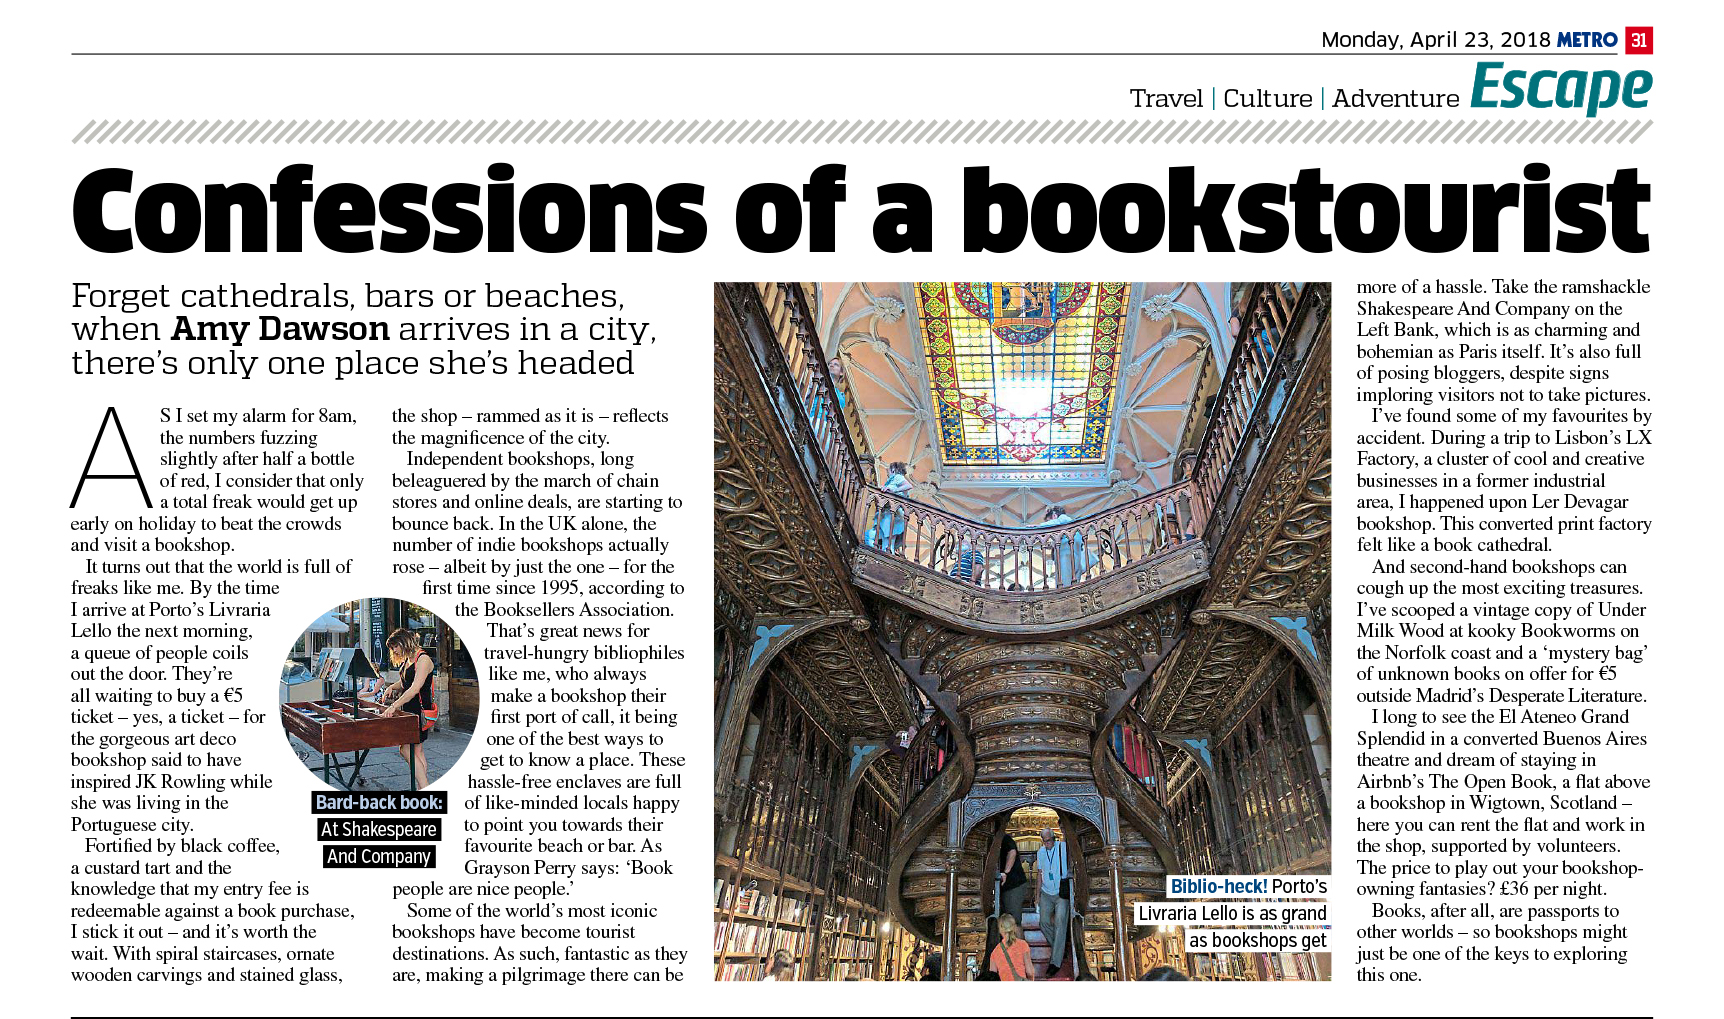 Confessions Of A Booktourist (Metro, 23rd Apr 2018)